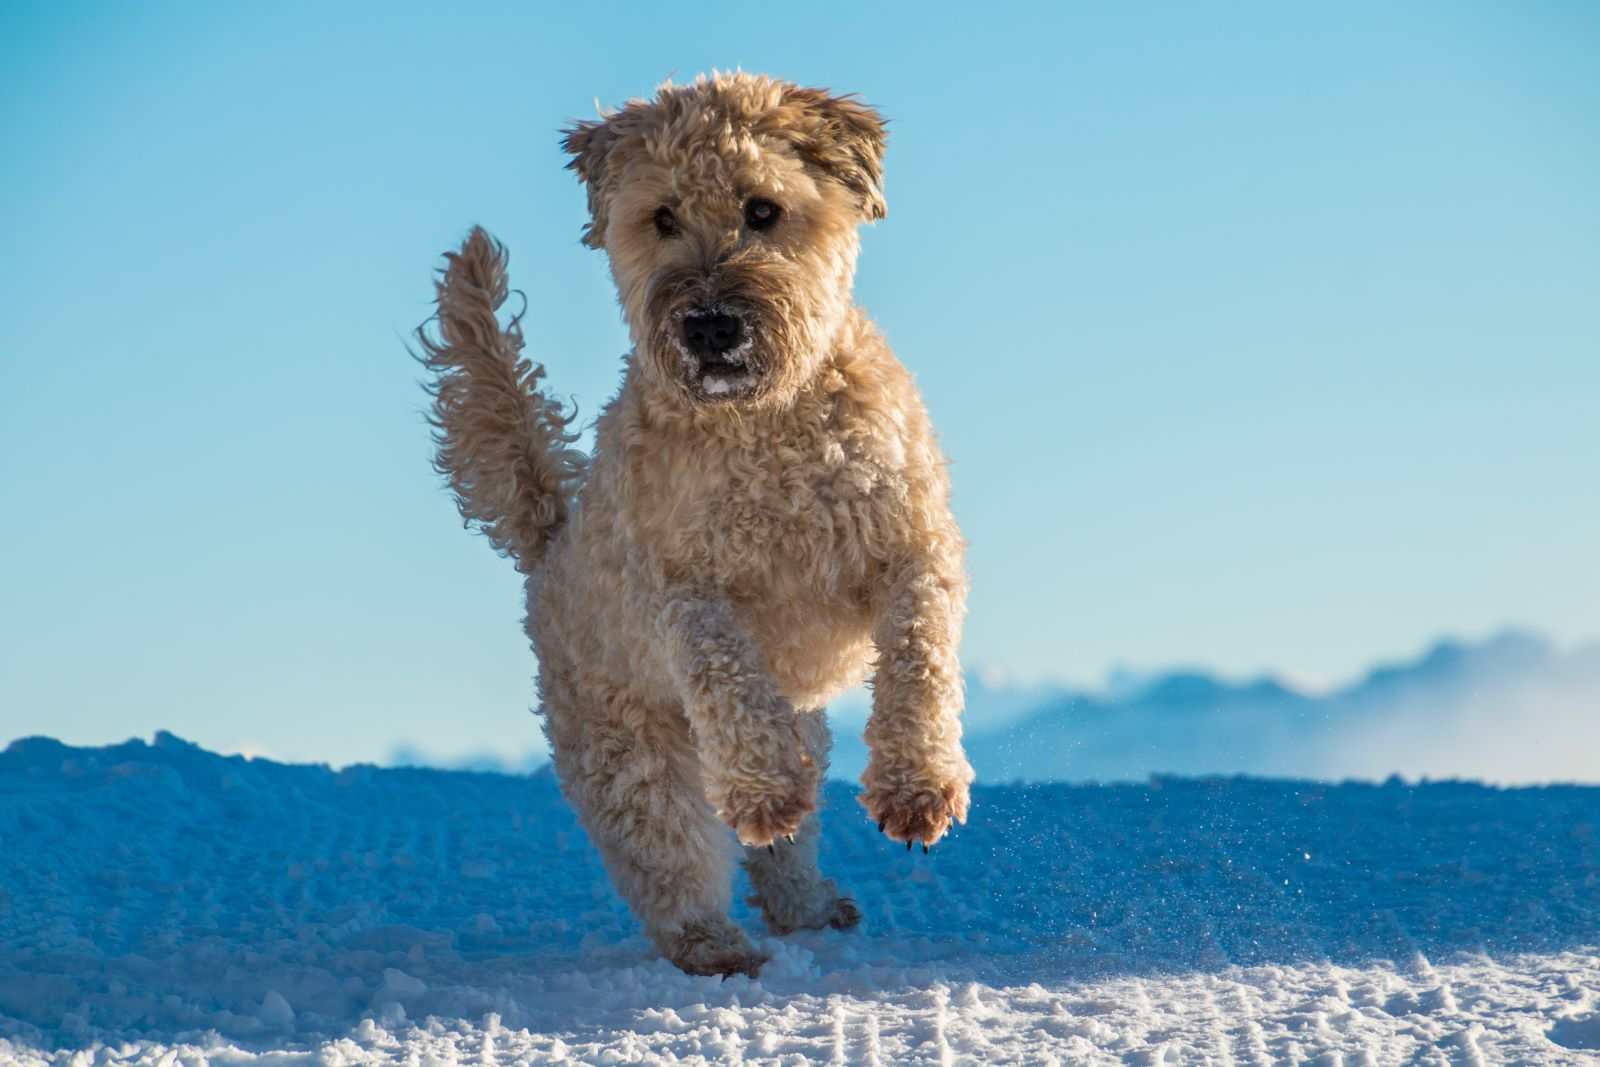 Wheaten Terrier jumping in the snow with a blue sky in the background